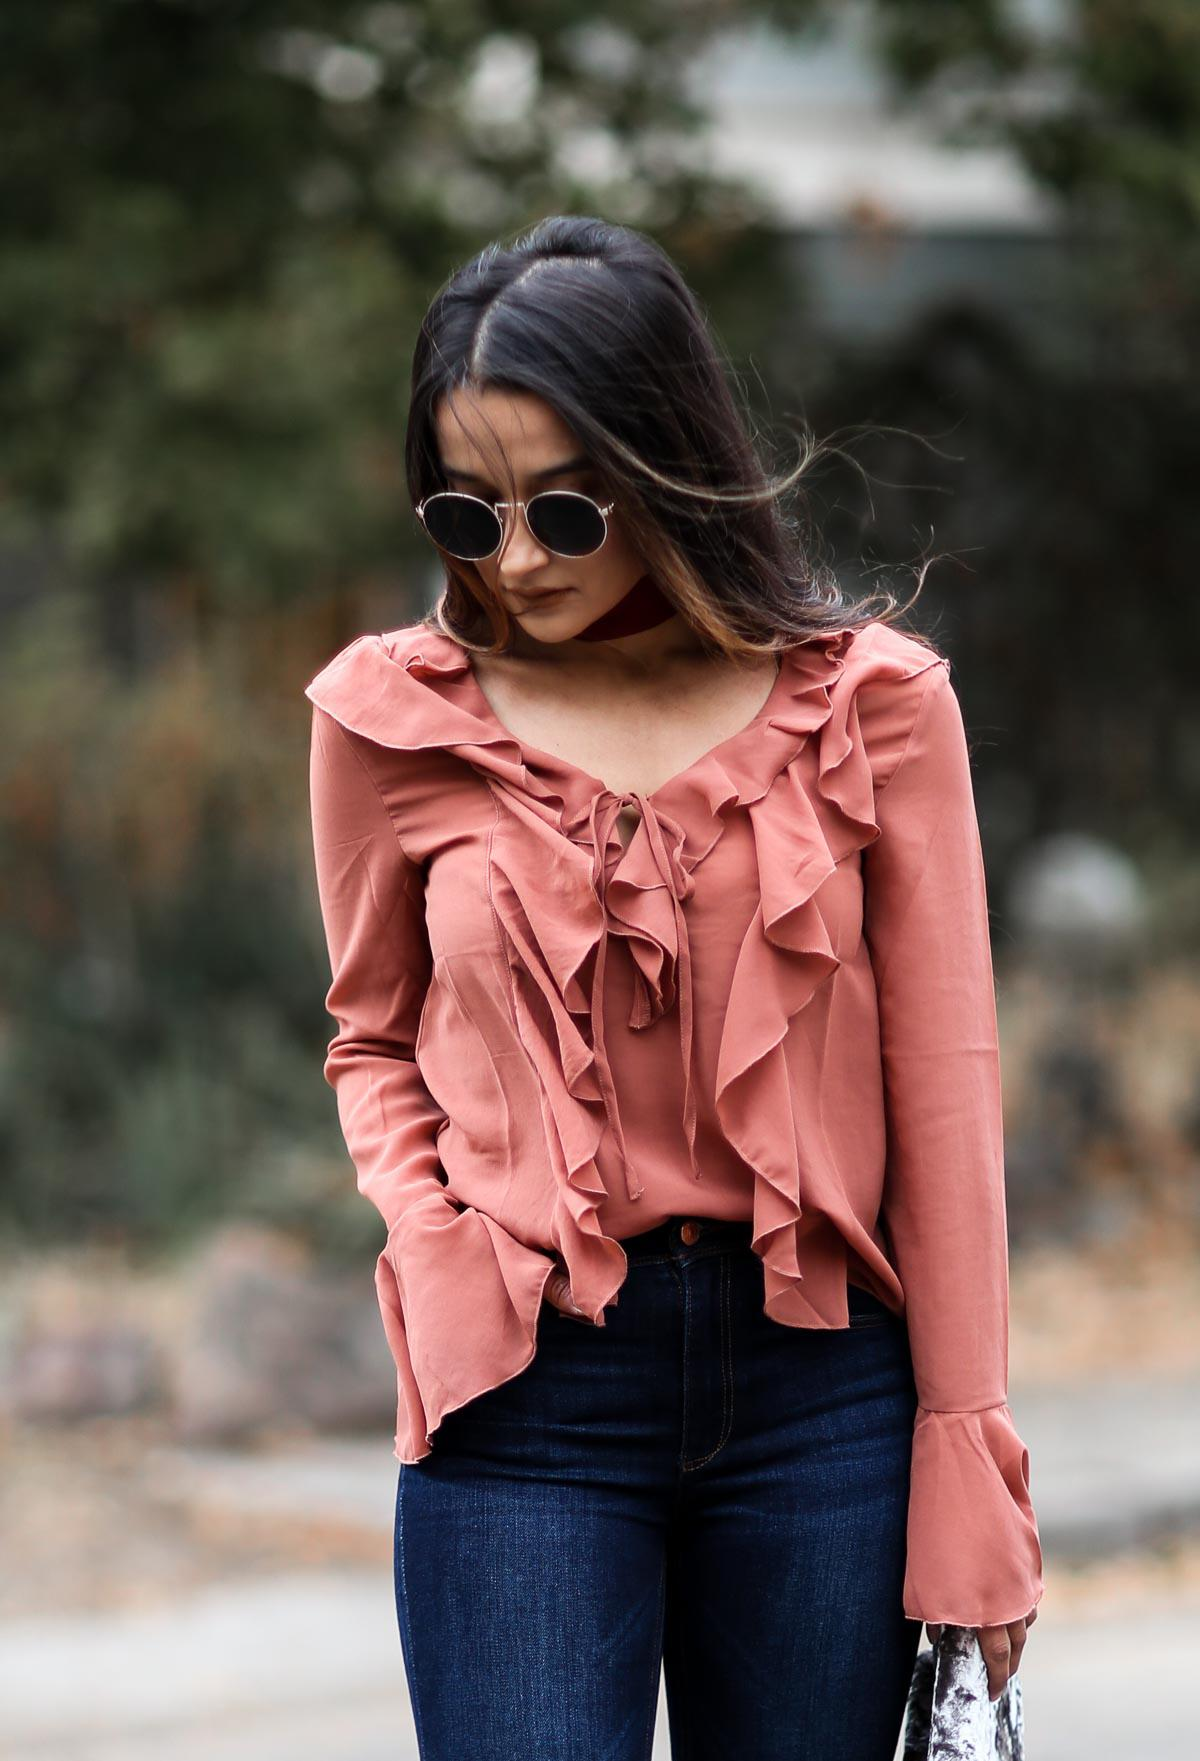 stiletto-confessions-forever21-ruffle-blouse-58